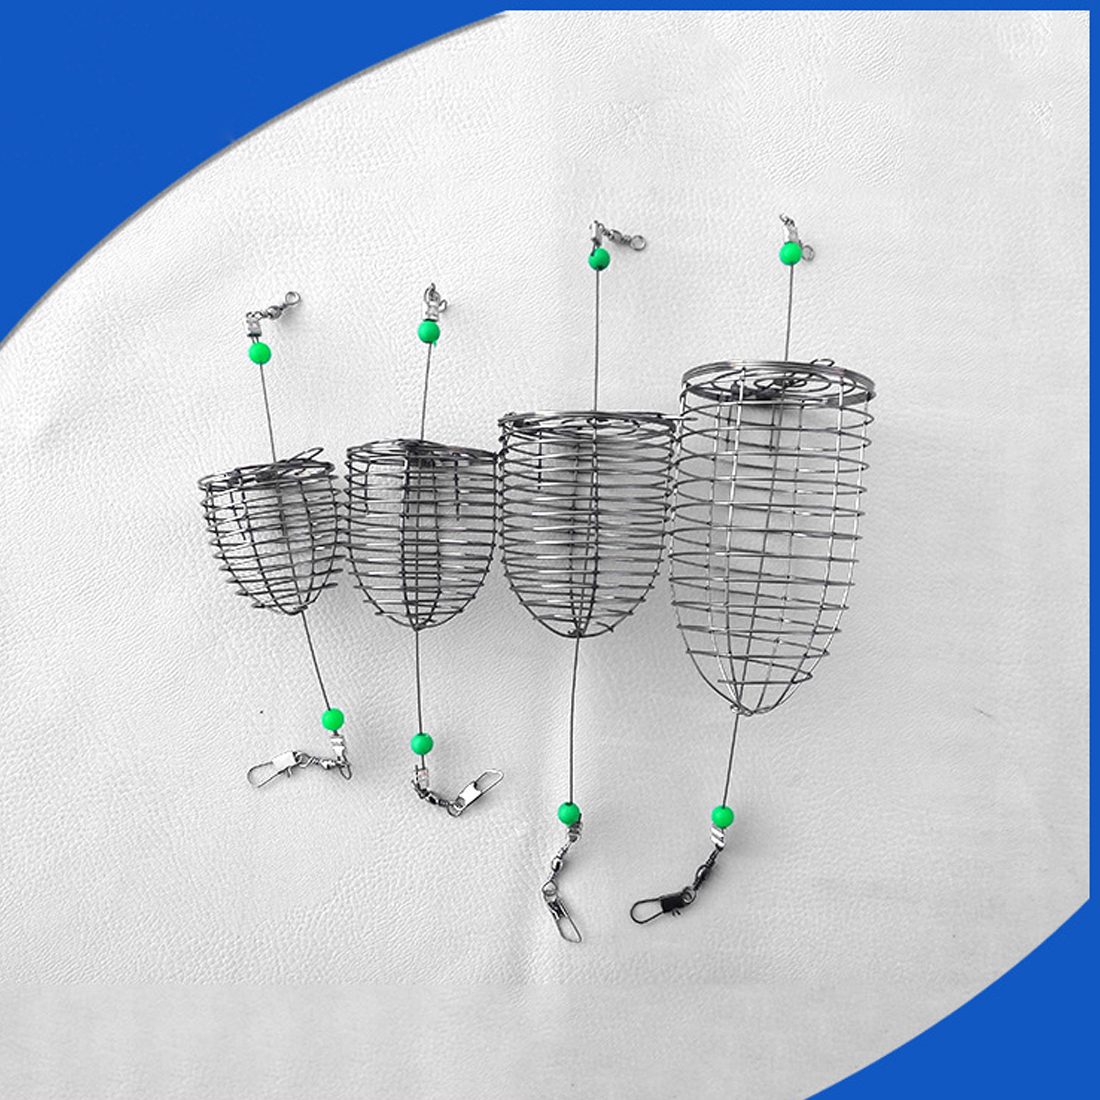 Stainless Steel Wire Fishing Lure Cage Small Bait Cage Fishing Trap Round Bottom Basket Feeder Holder Fishing TackleStainless Steel Wire Fishing Lure Cage Small Bait Cage Fishing Trap Round Bottom Basket Feeder Holder Fishing Tackle